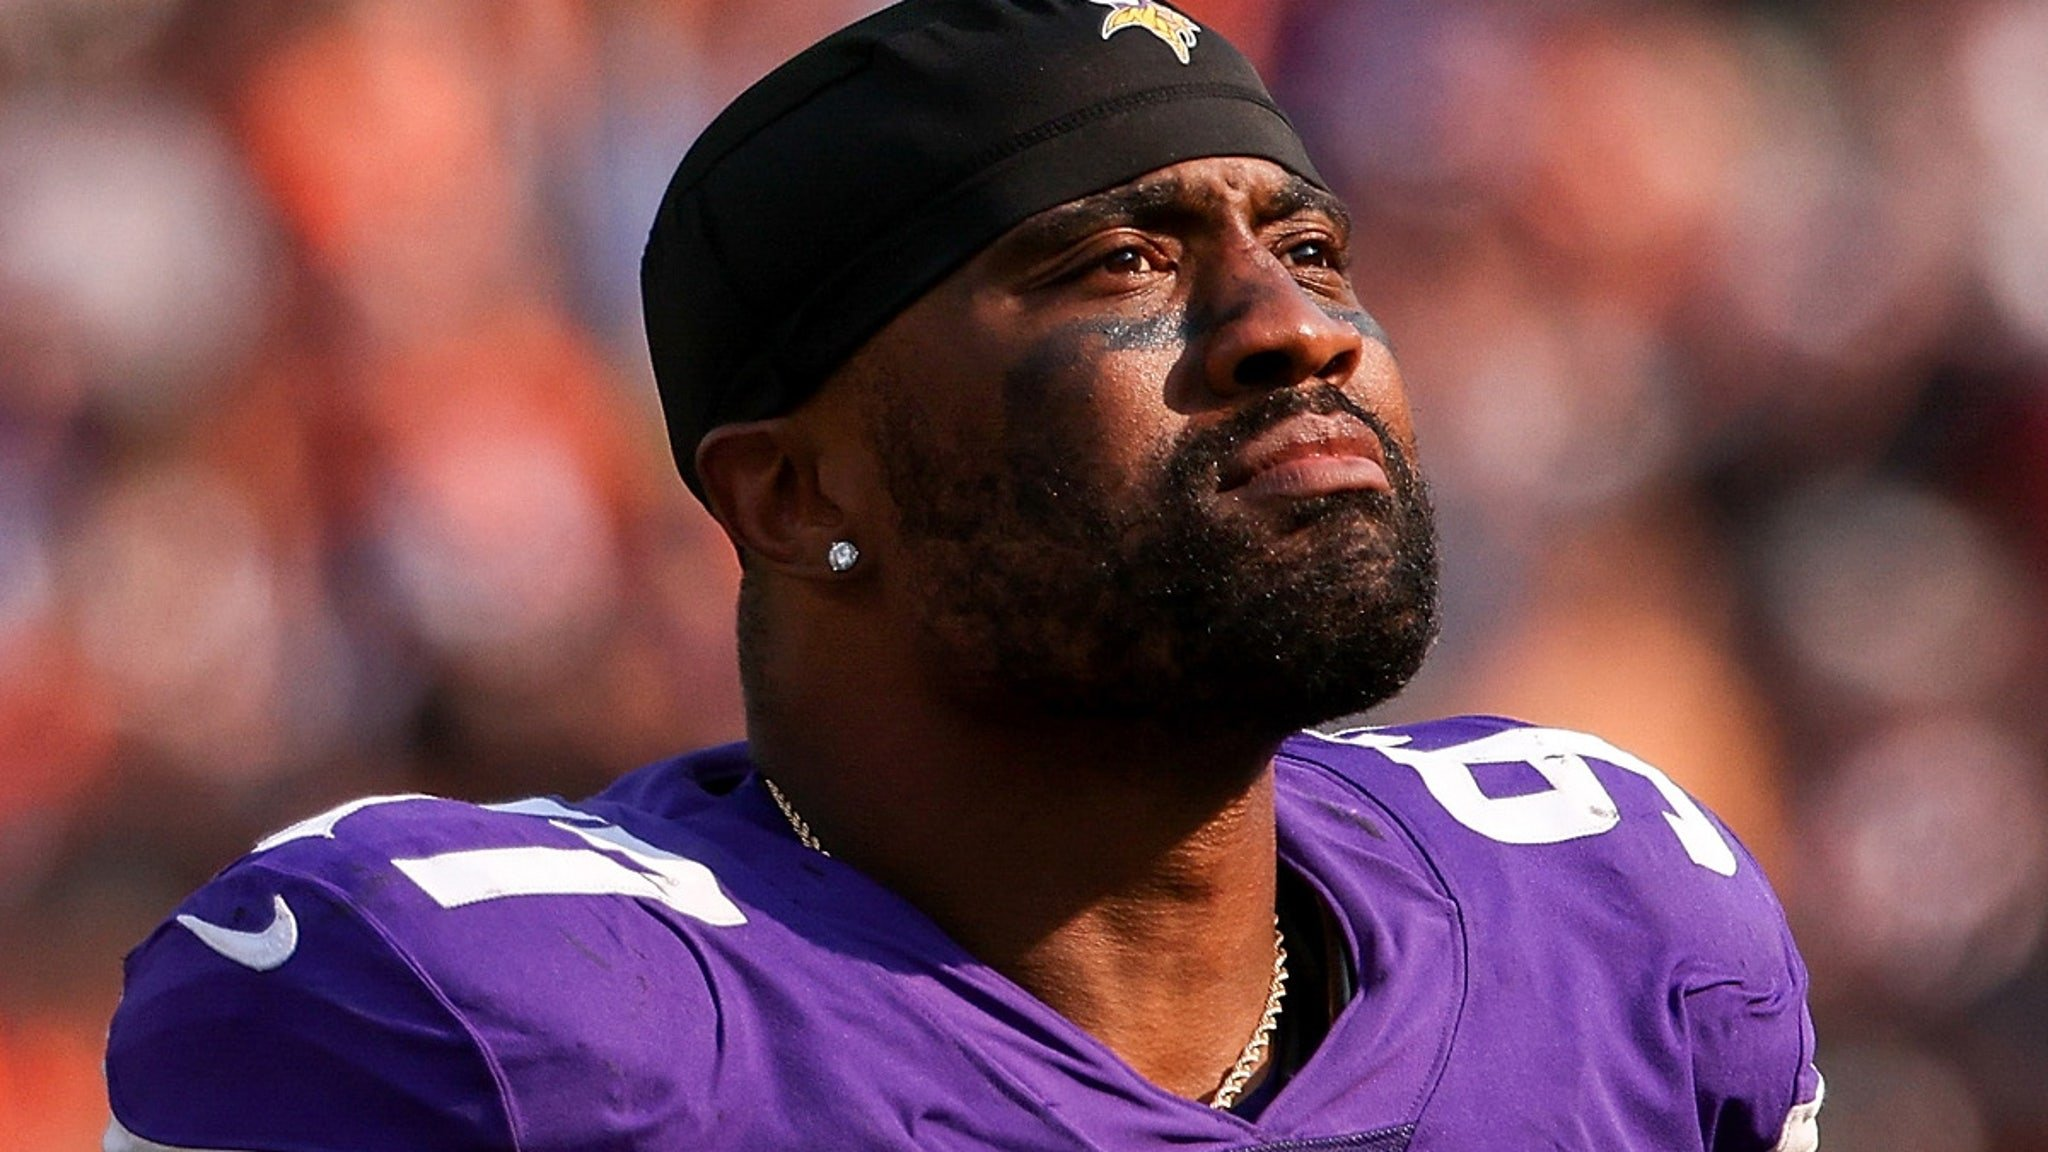 Minnesota Vikings DE Everson Griffen Suffers Concussion After Swerving Car to Avoid Hitting Deer